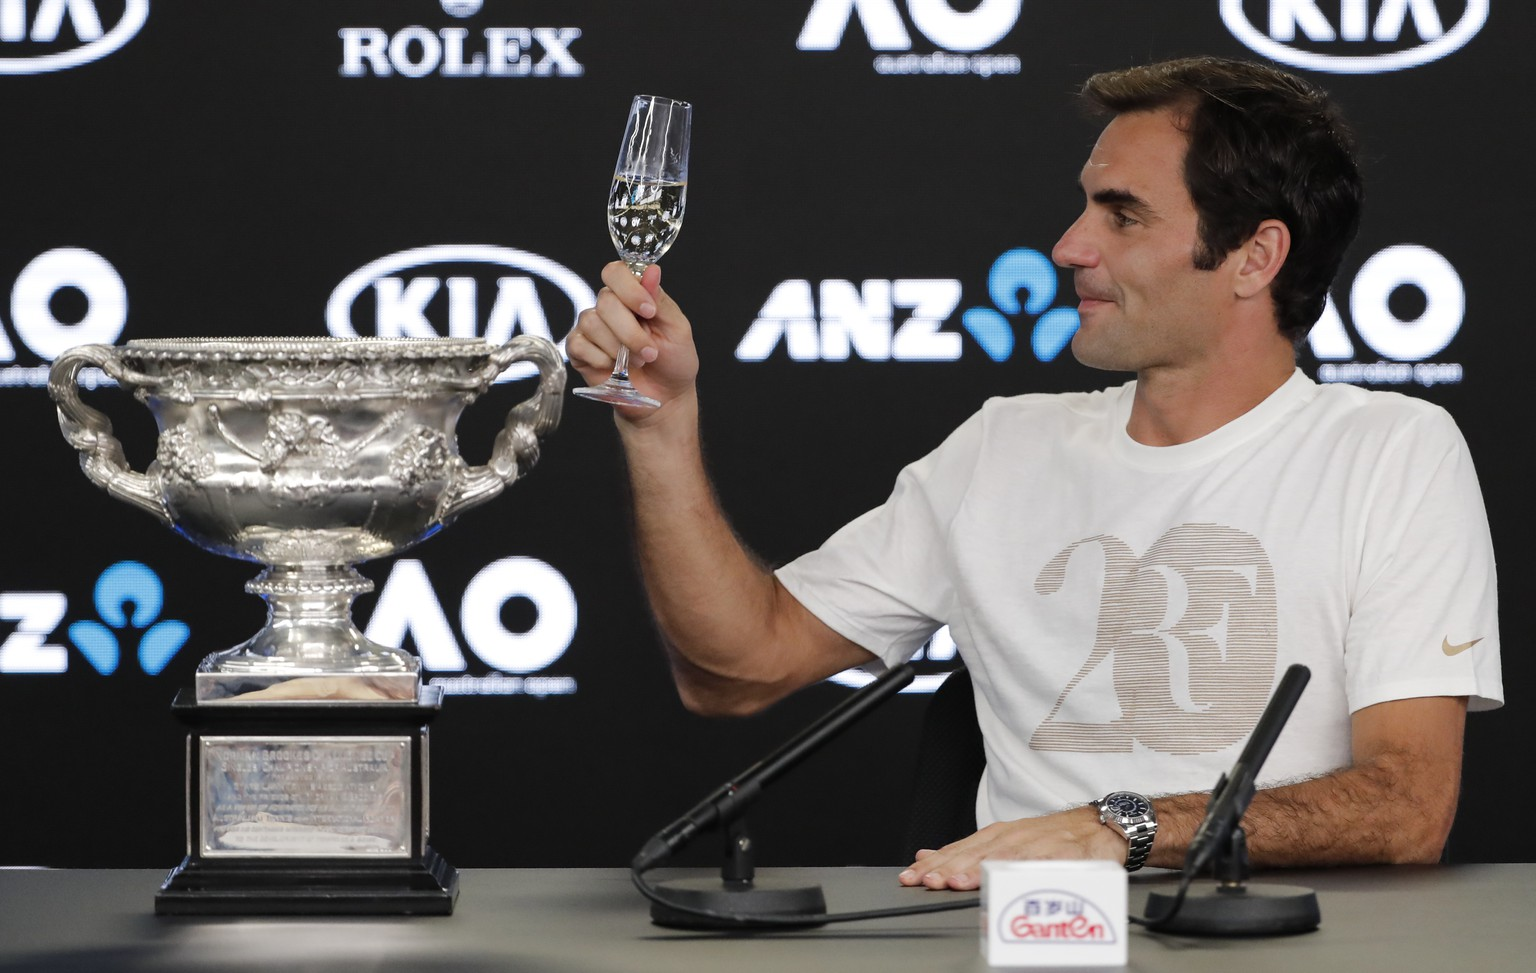 Switzerland's Roger Federer gestures with his glass of champagne at a press conference after defeating Croatia's Marin Cilic in the men's singles final at the Australian Open tennis championships in Melbourne, Australia, Monday, Jan. 29, 2018. (AP Photo/Vincent Thian)